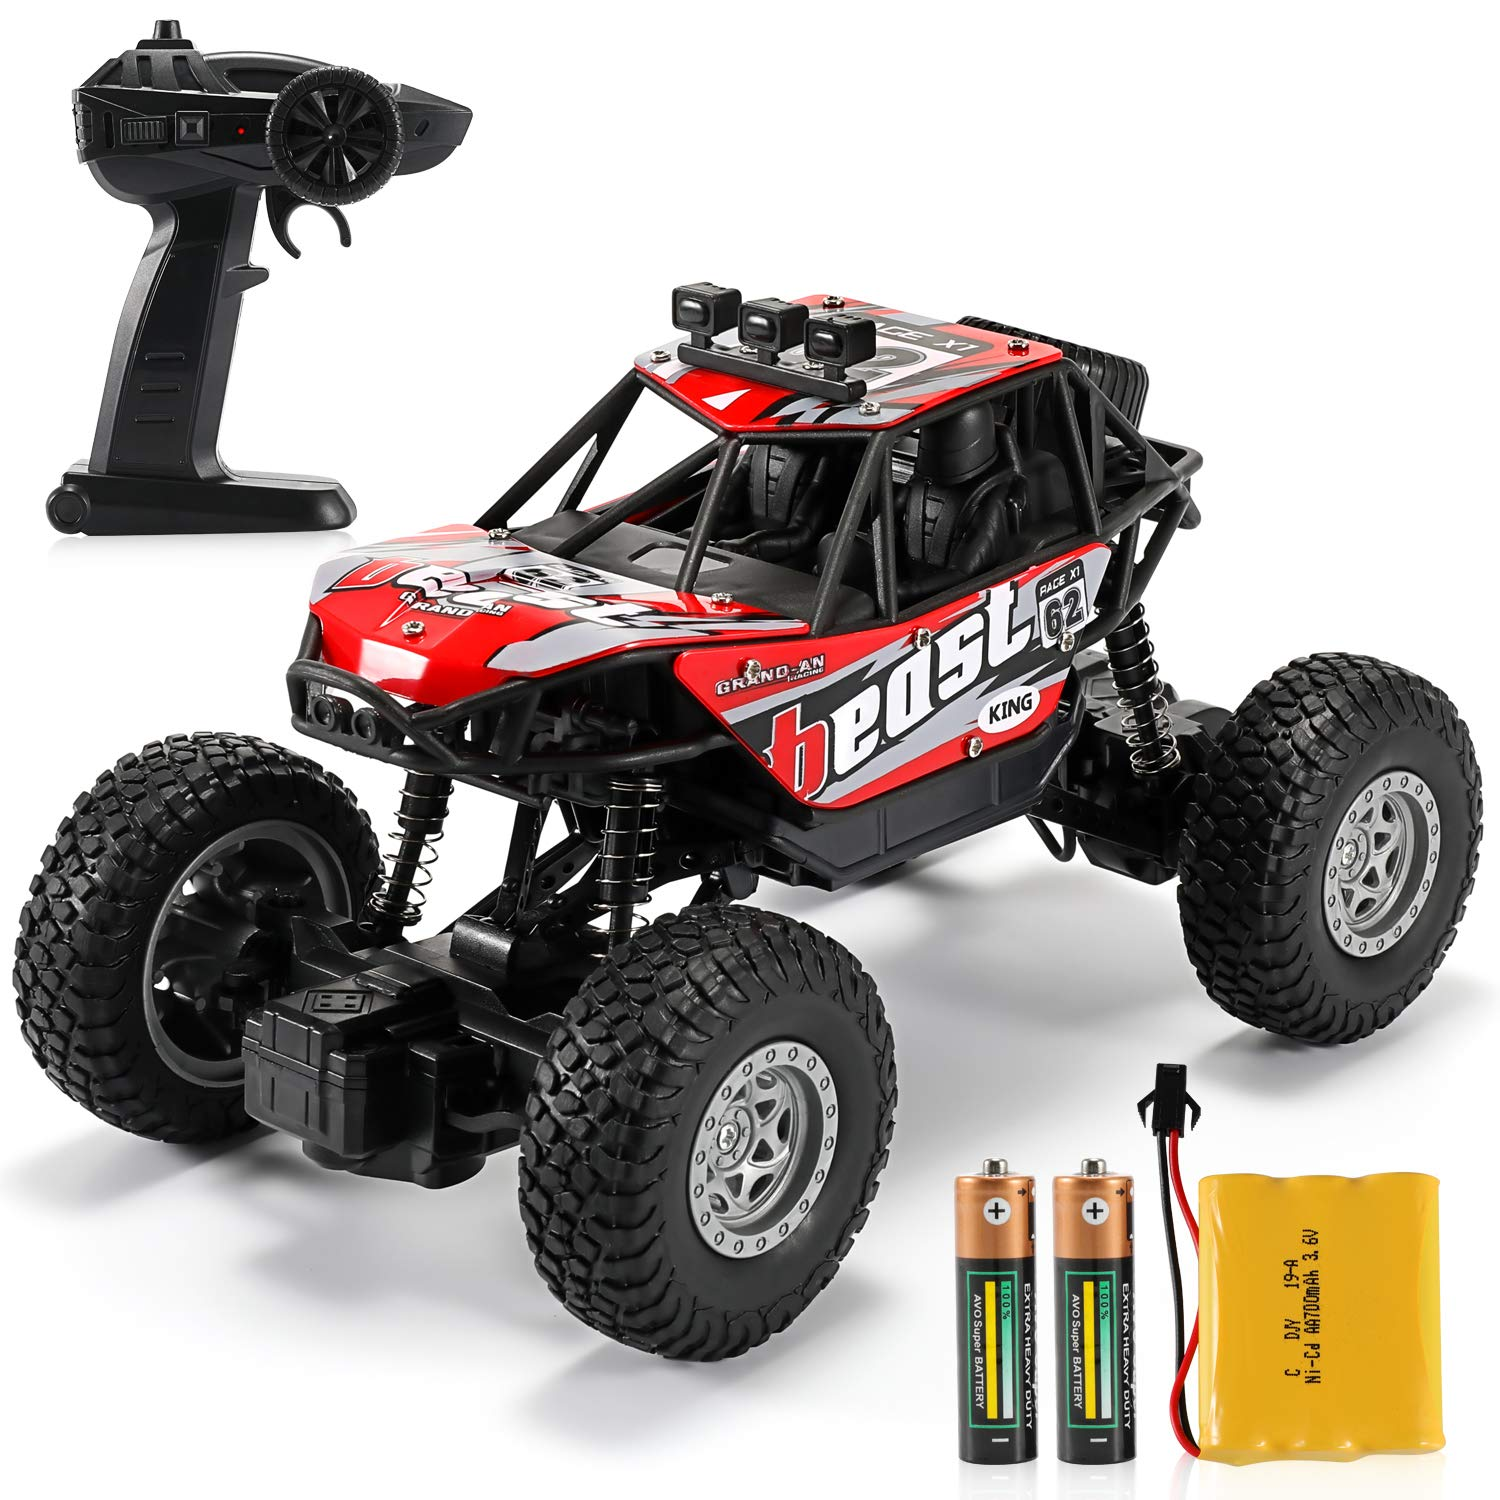 Dennov RC Truck Car, Remote Control Truck Car, 1/20 Scale Rechargeable RC Crawler Toy Car for Adults & Kids, Red